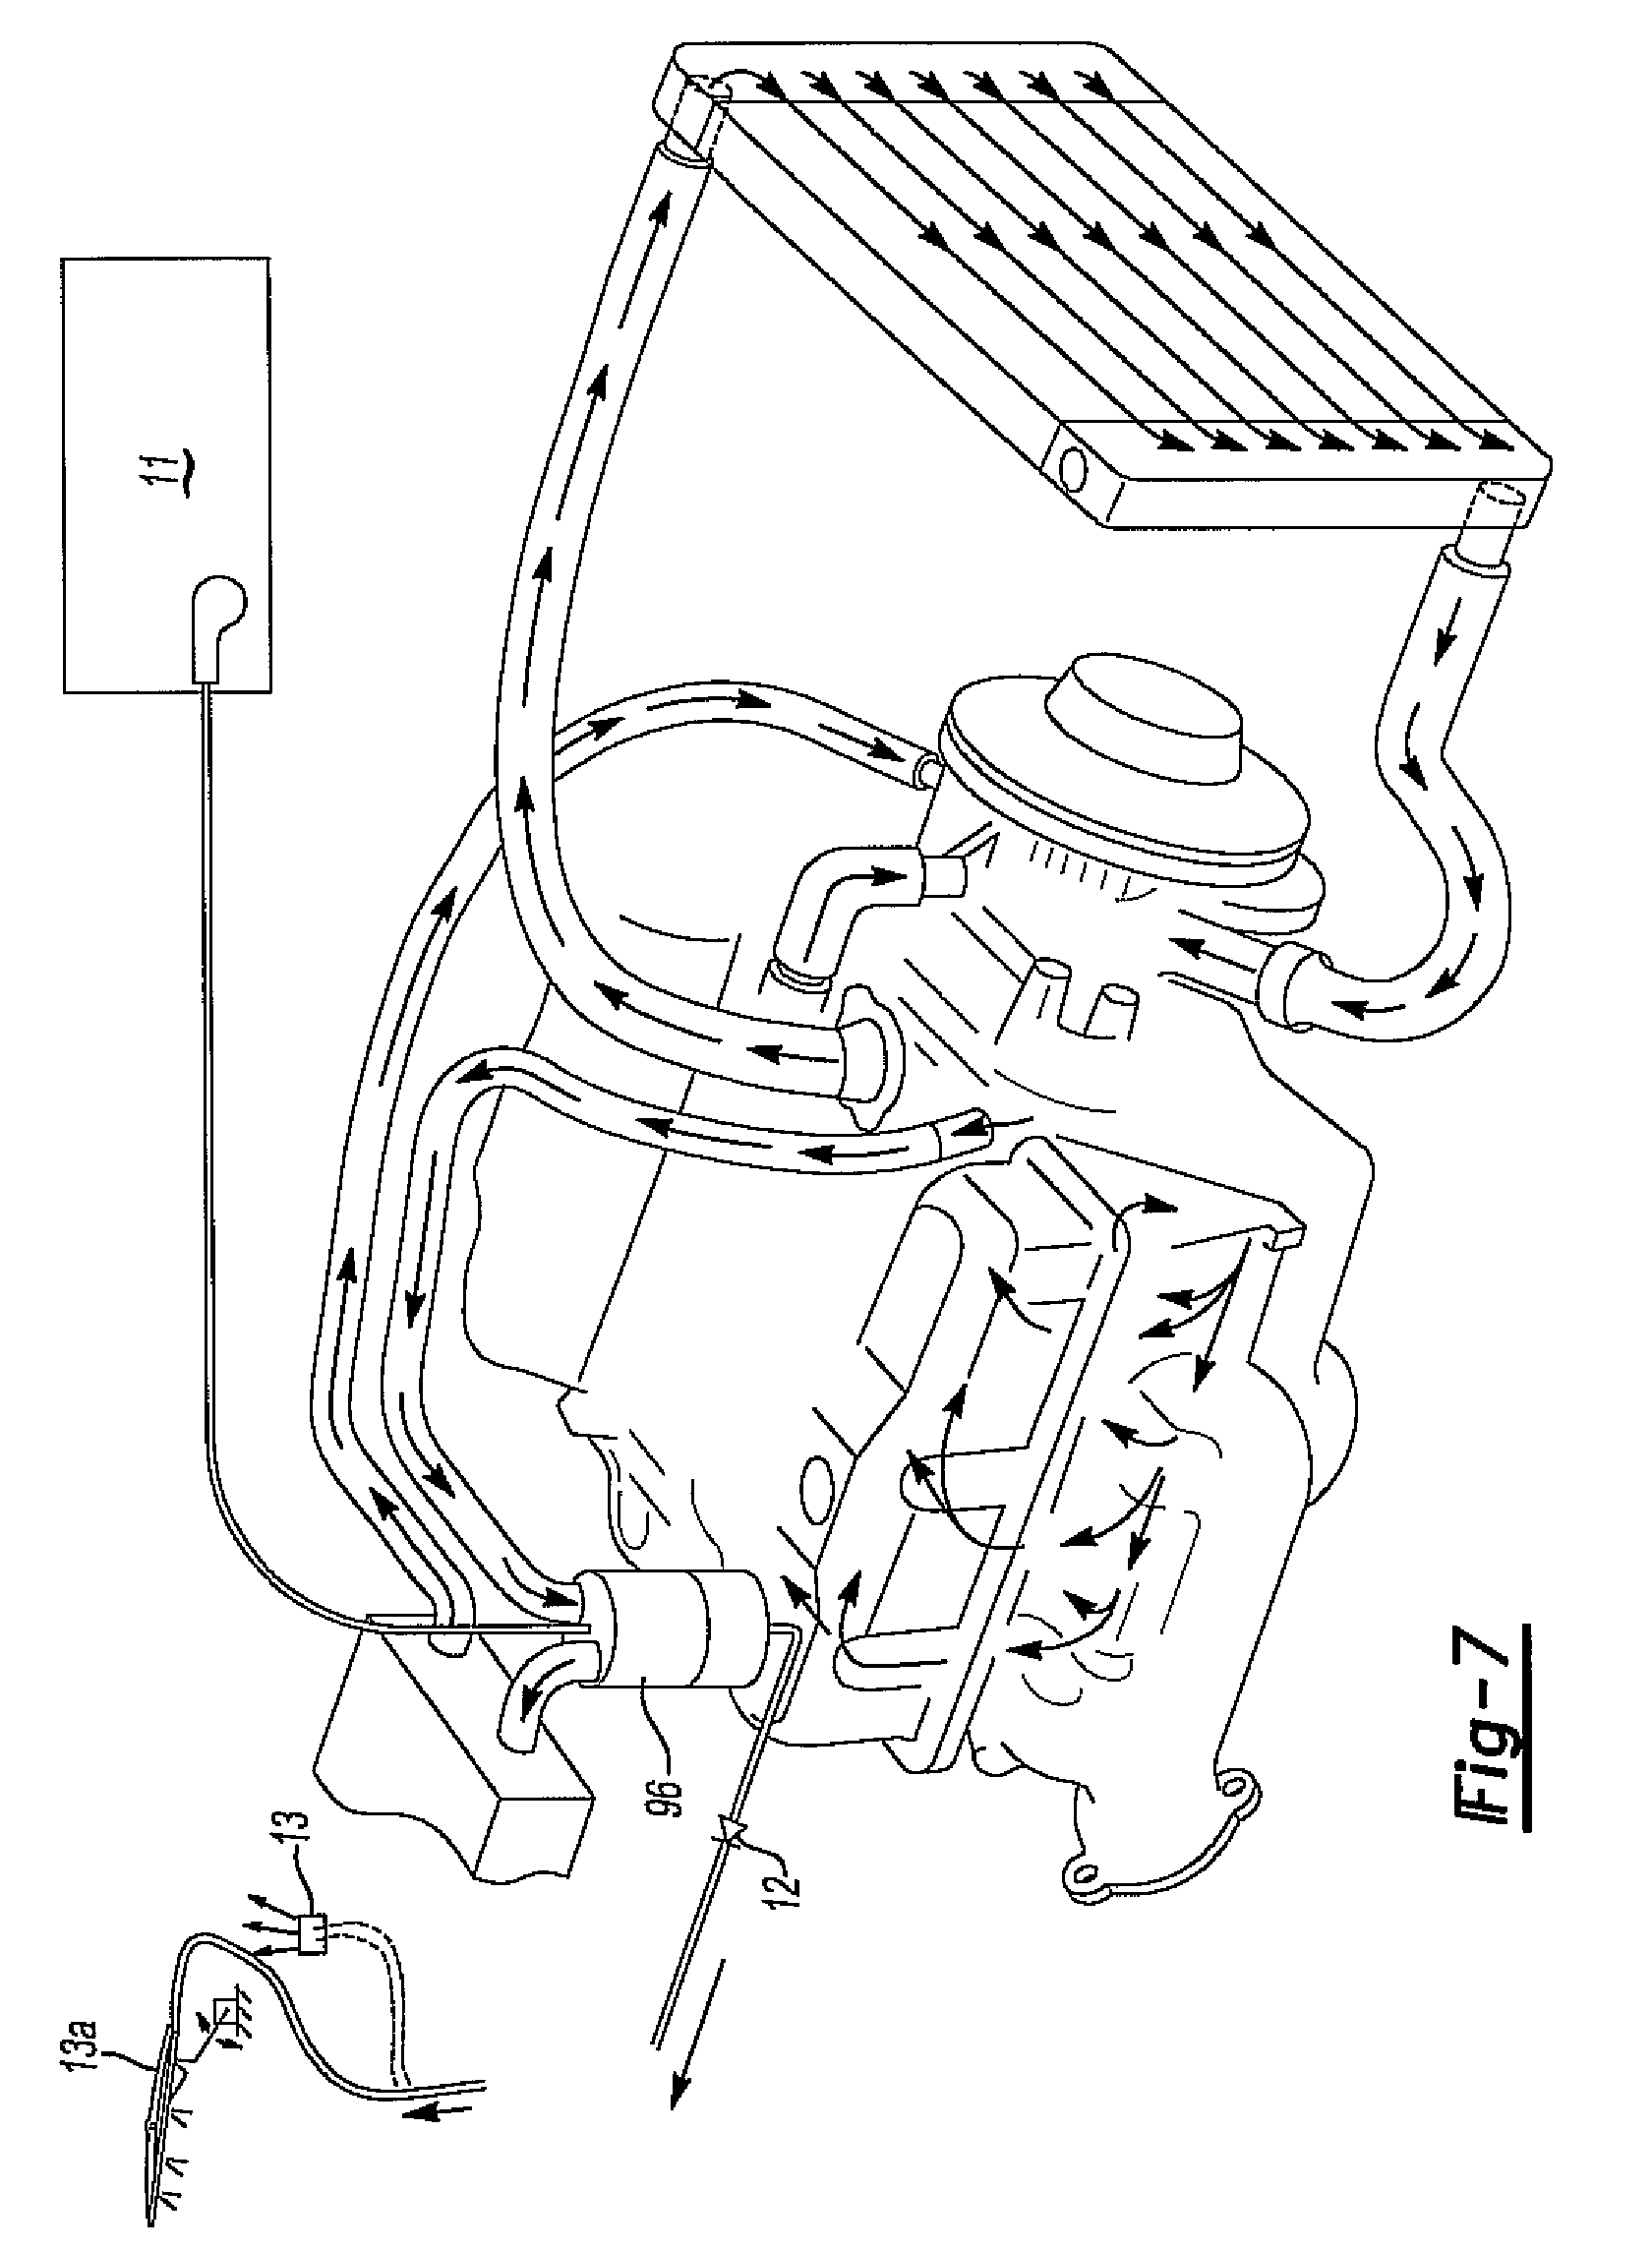 1954 Chevy Truck Wiring Frame All Kind Of Diagrams Diagram Ford Ignition Get Free Image About Specifications